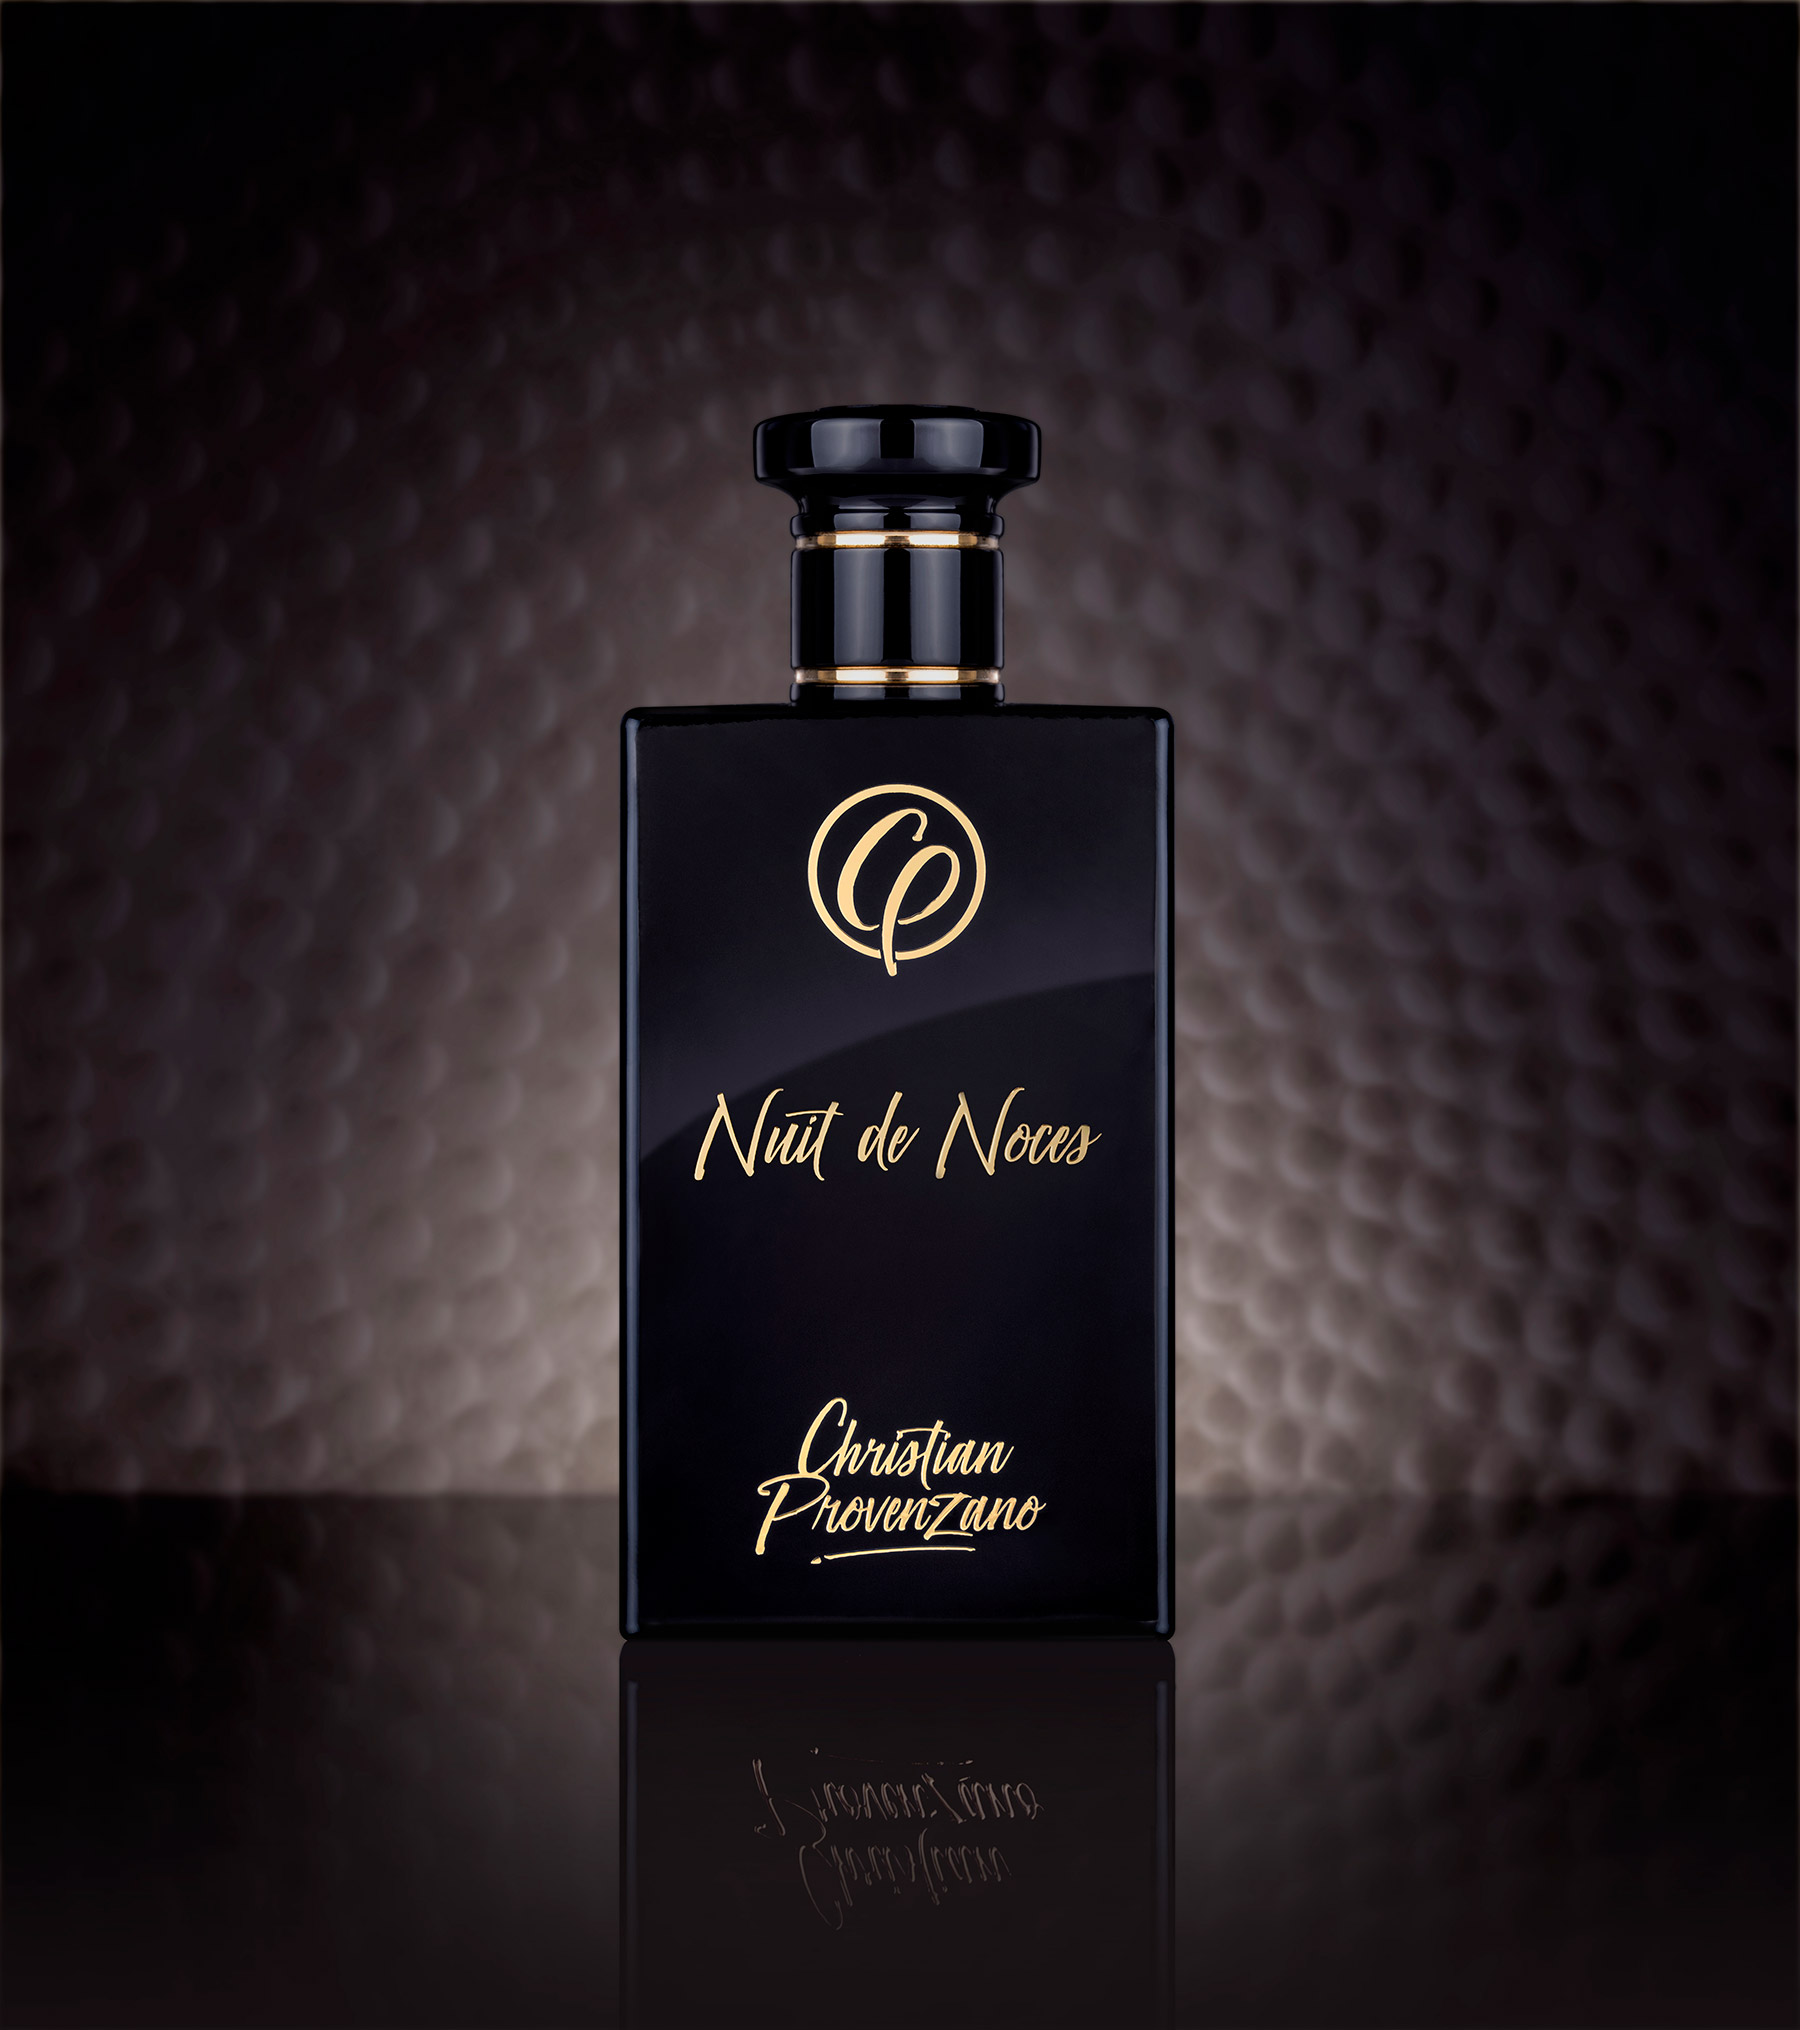 nuit de noces christian provenzano parfums perfume a new fragrance for women and men 2018. Black Bedroom Furniture Sets. Home Design Ideas